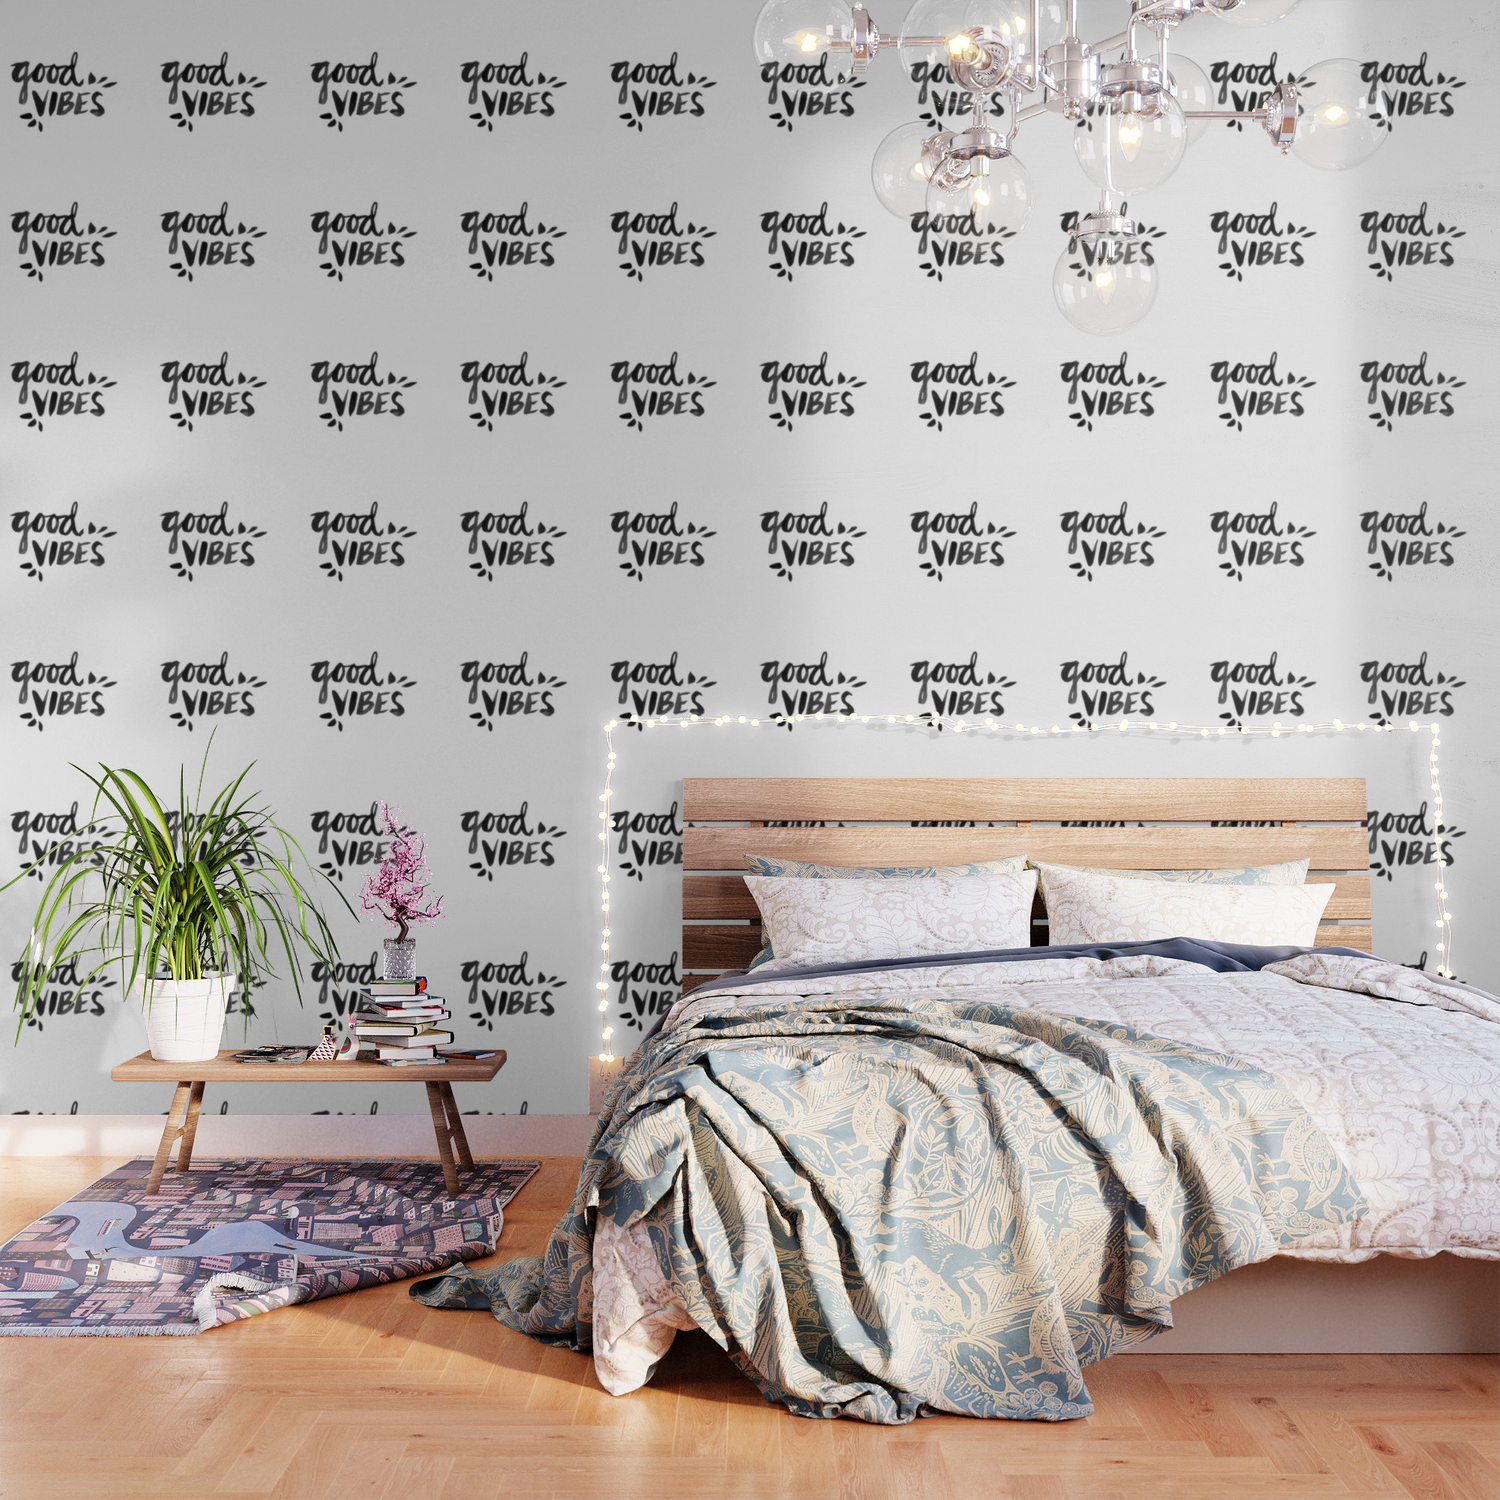 Good Vibes Black Ink Wallpaper By Catcoq Society6